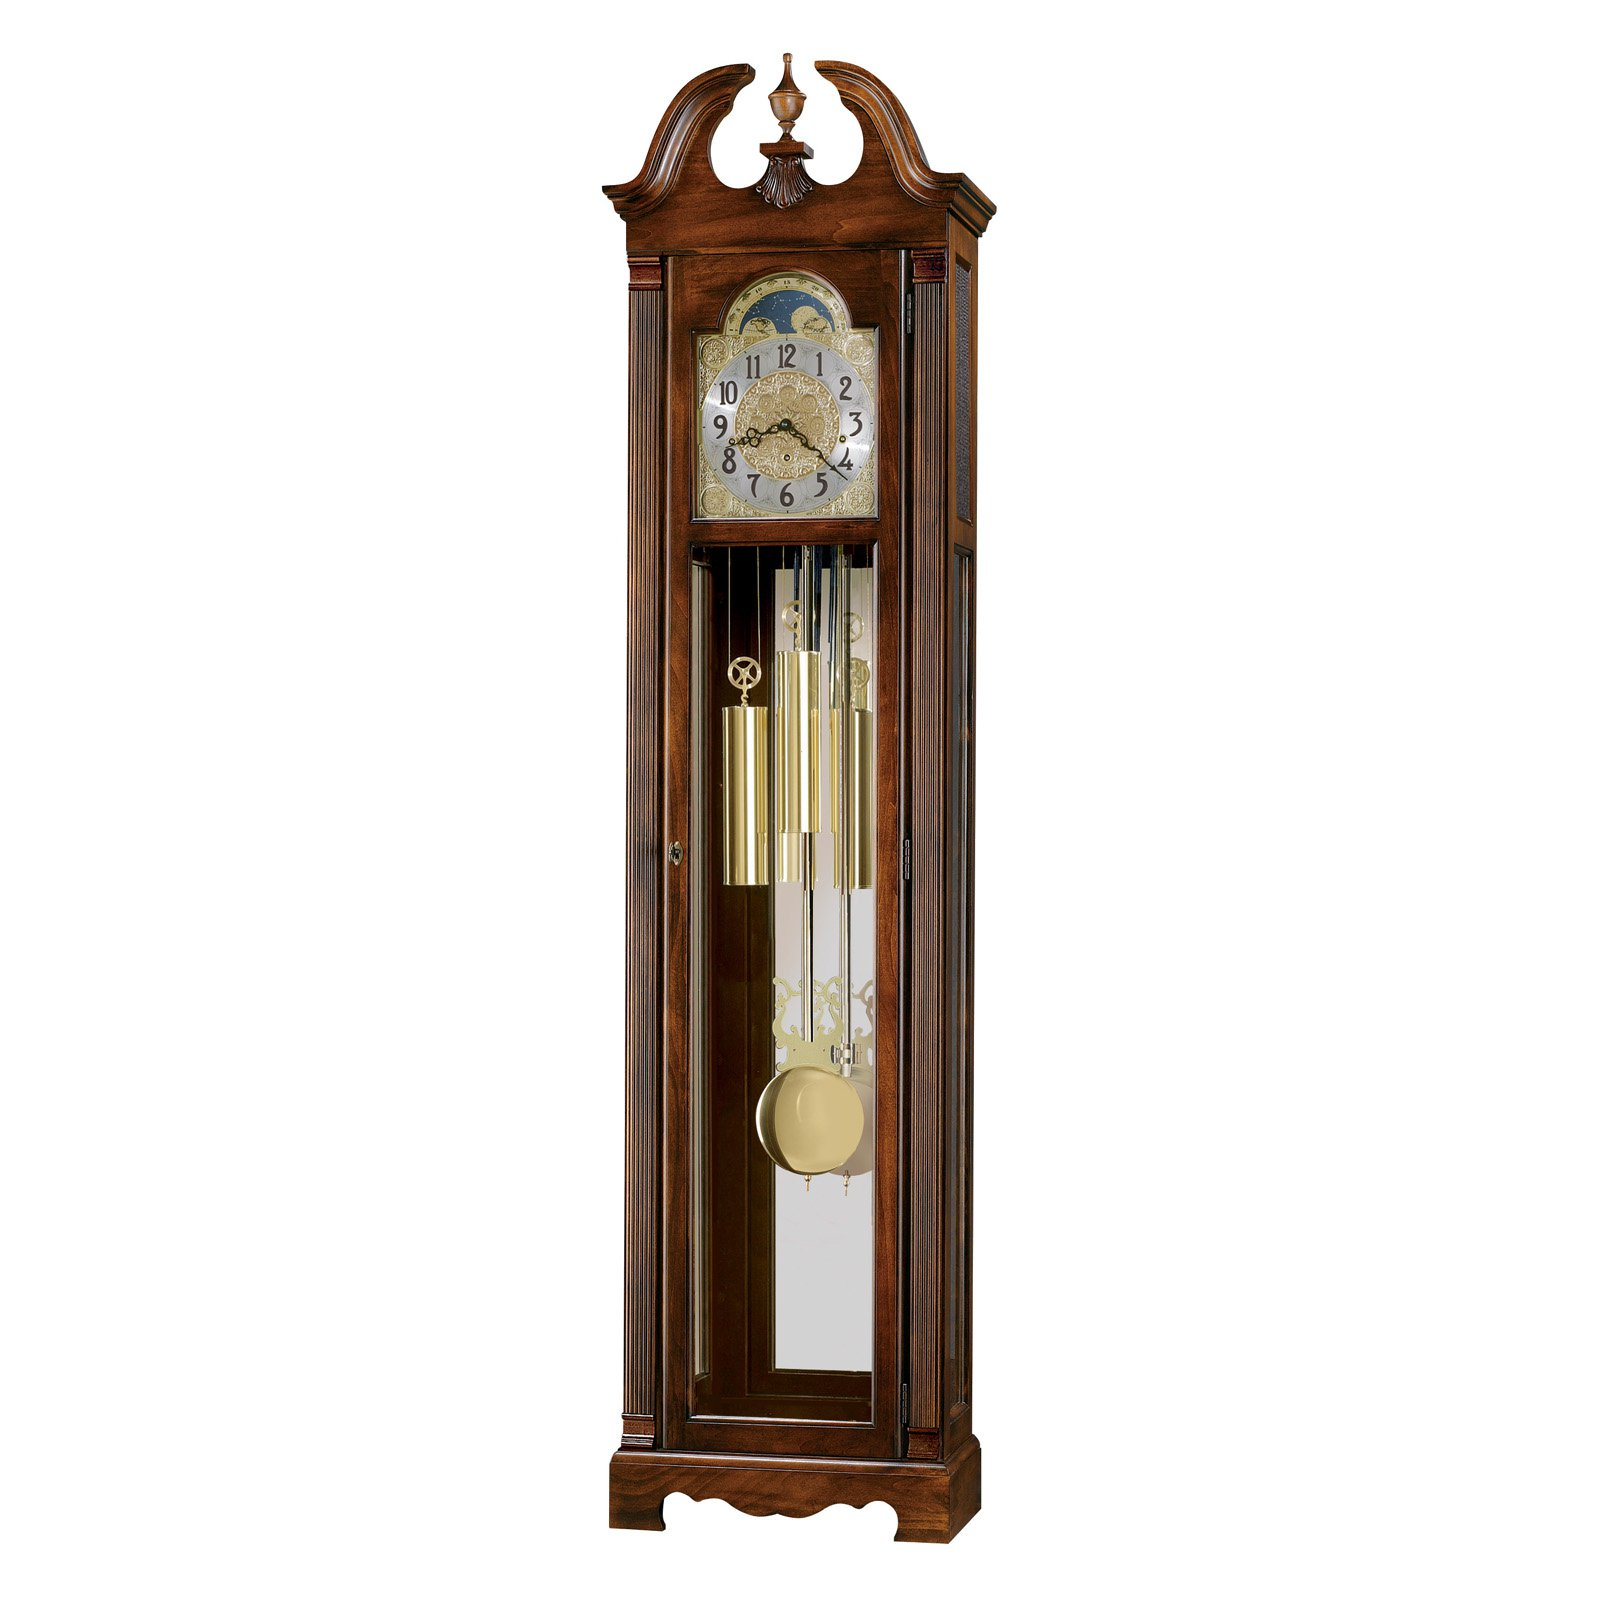 Howard Miller 611-170 Warren Grandfather Clock by Howard Miller